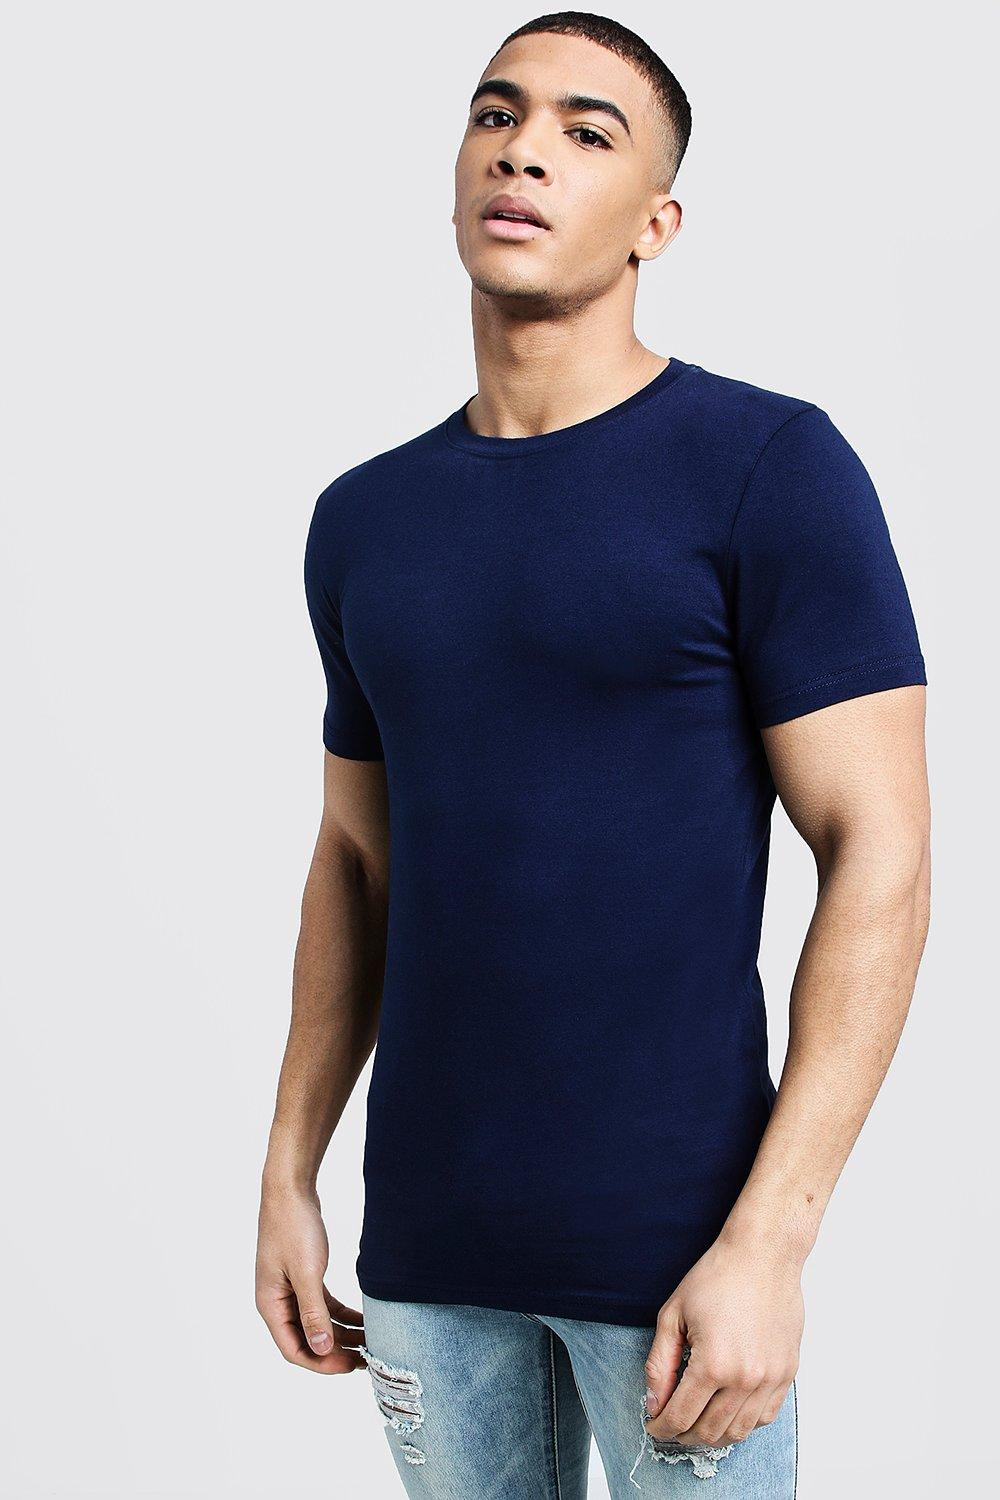 64094b1c86e9 Mens Navy Muscle Fit Crew Neck T Shirt. Hover to zoom